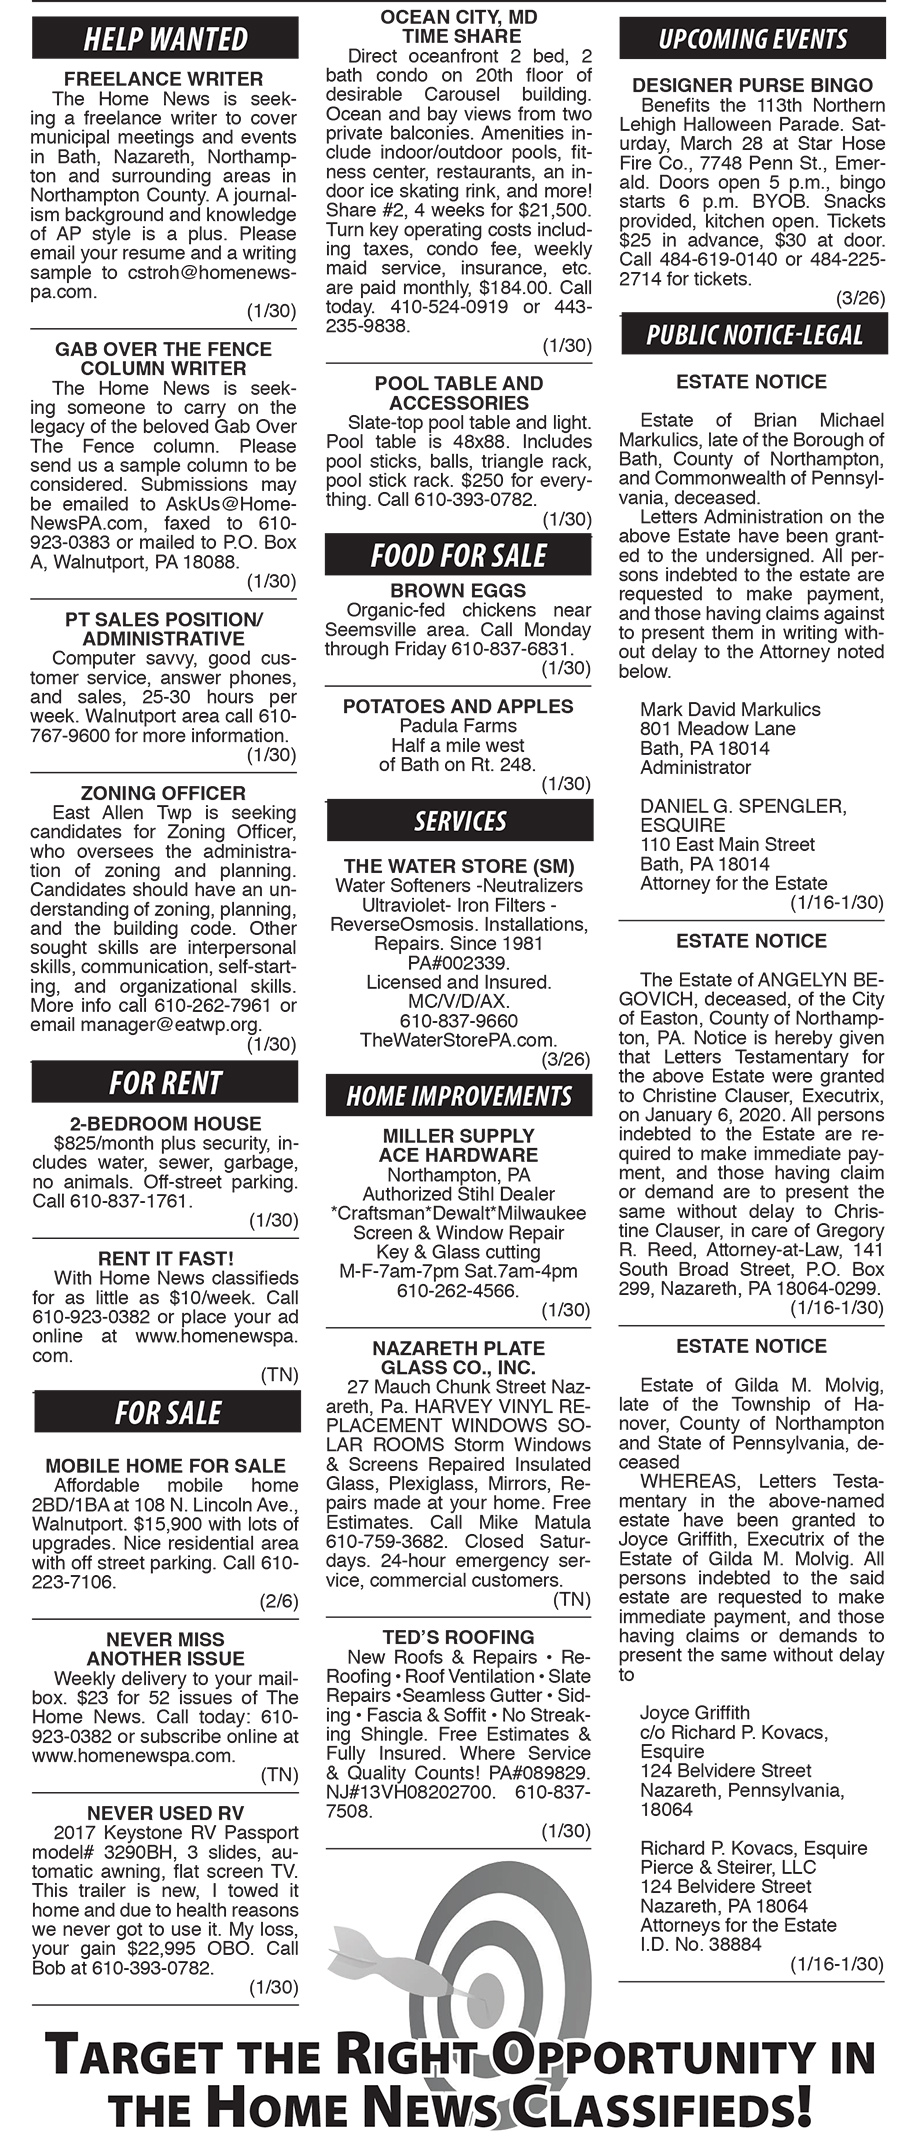 Northampton Pa Halloween Parade 2020 HN_Jan30 classifieds   The Home News